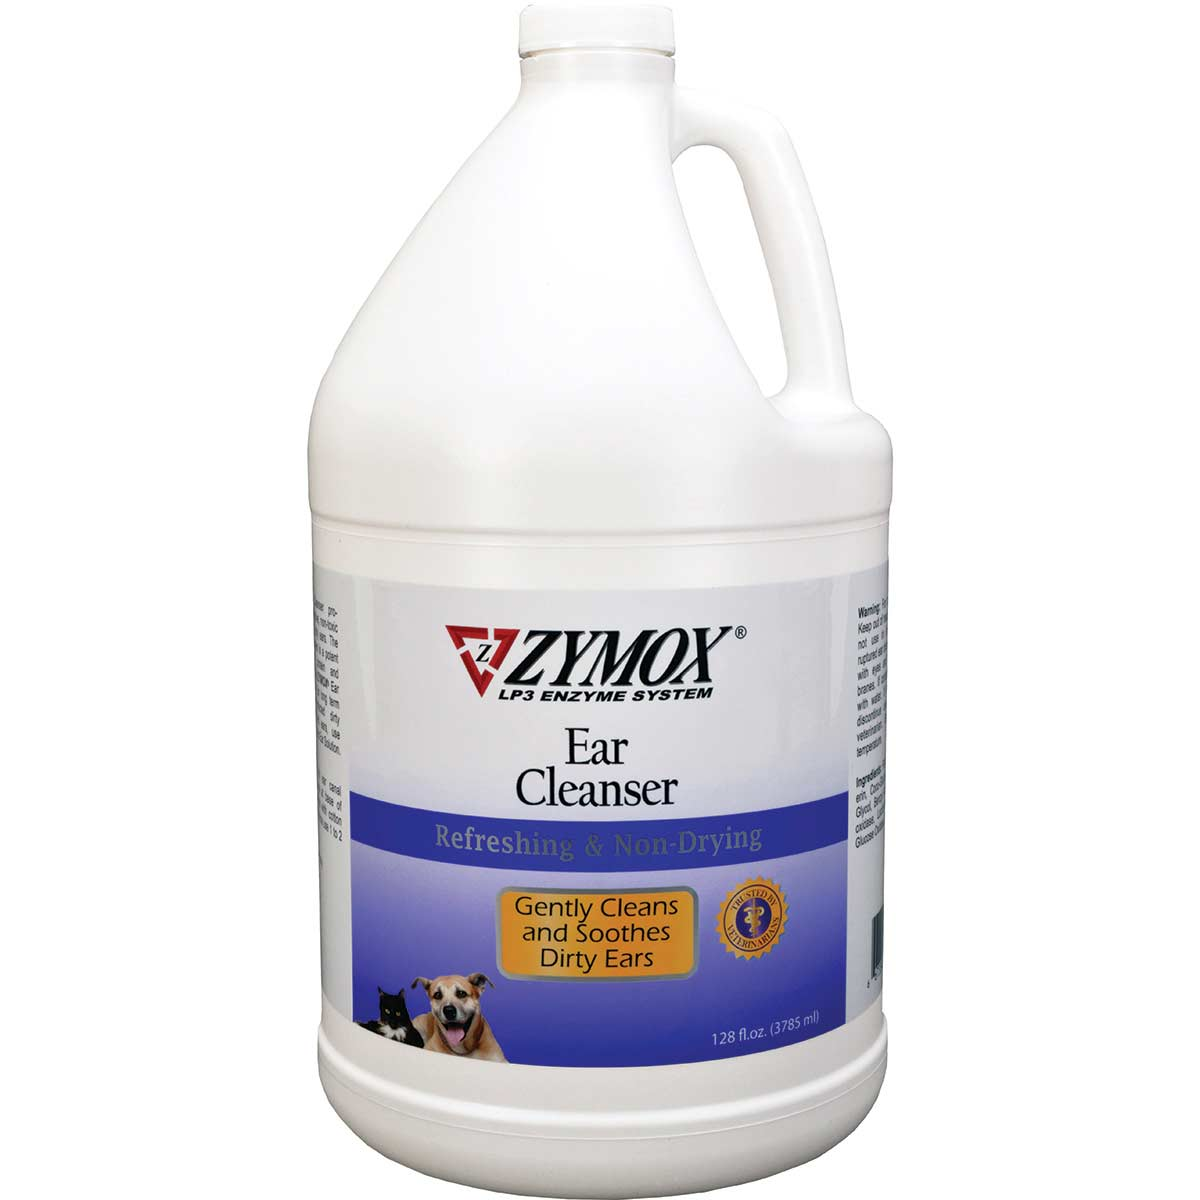 Zymox Dog Ear Cleanser Gallon - Refreshing and Non-drying, Cleans and Soothes Ears